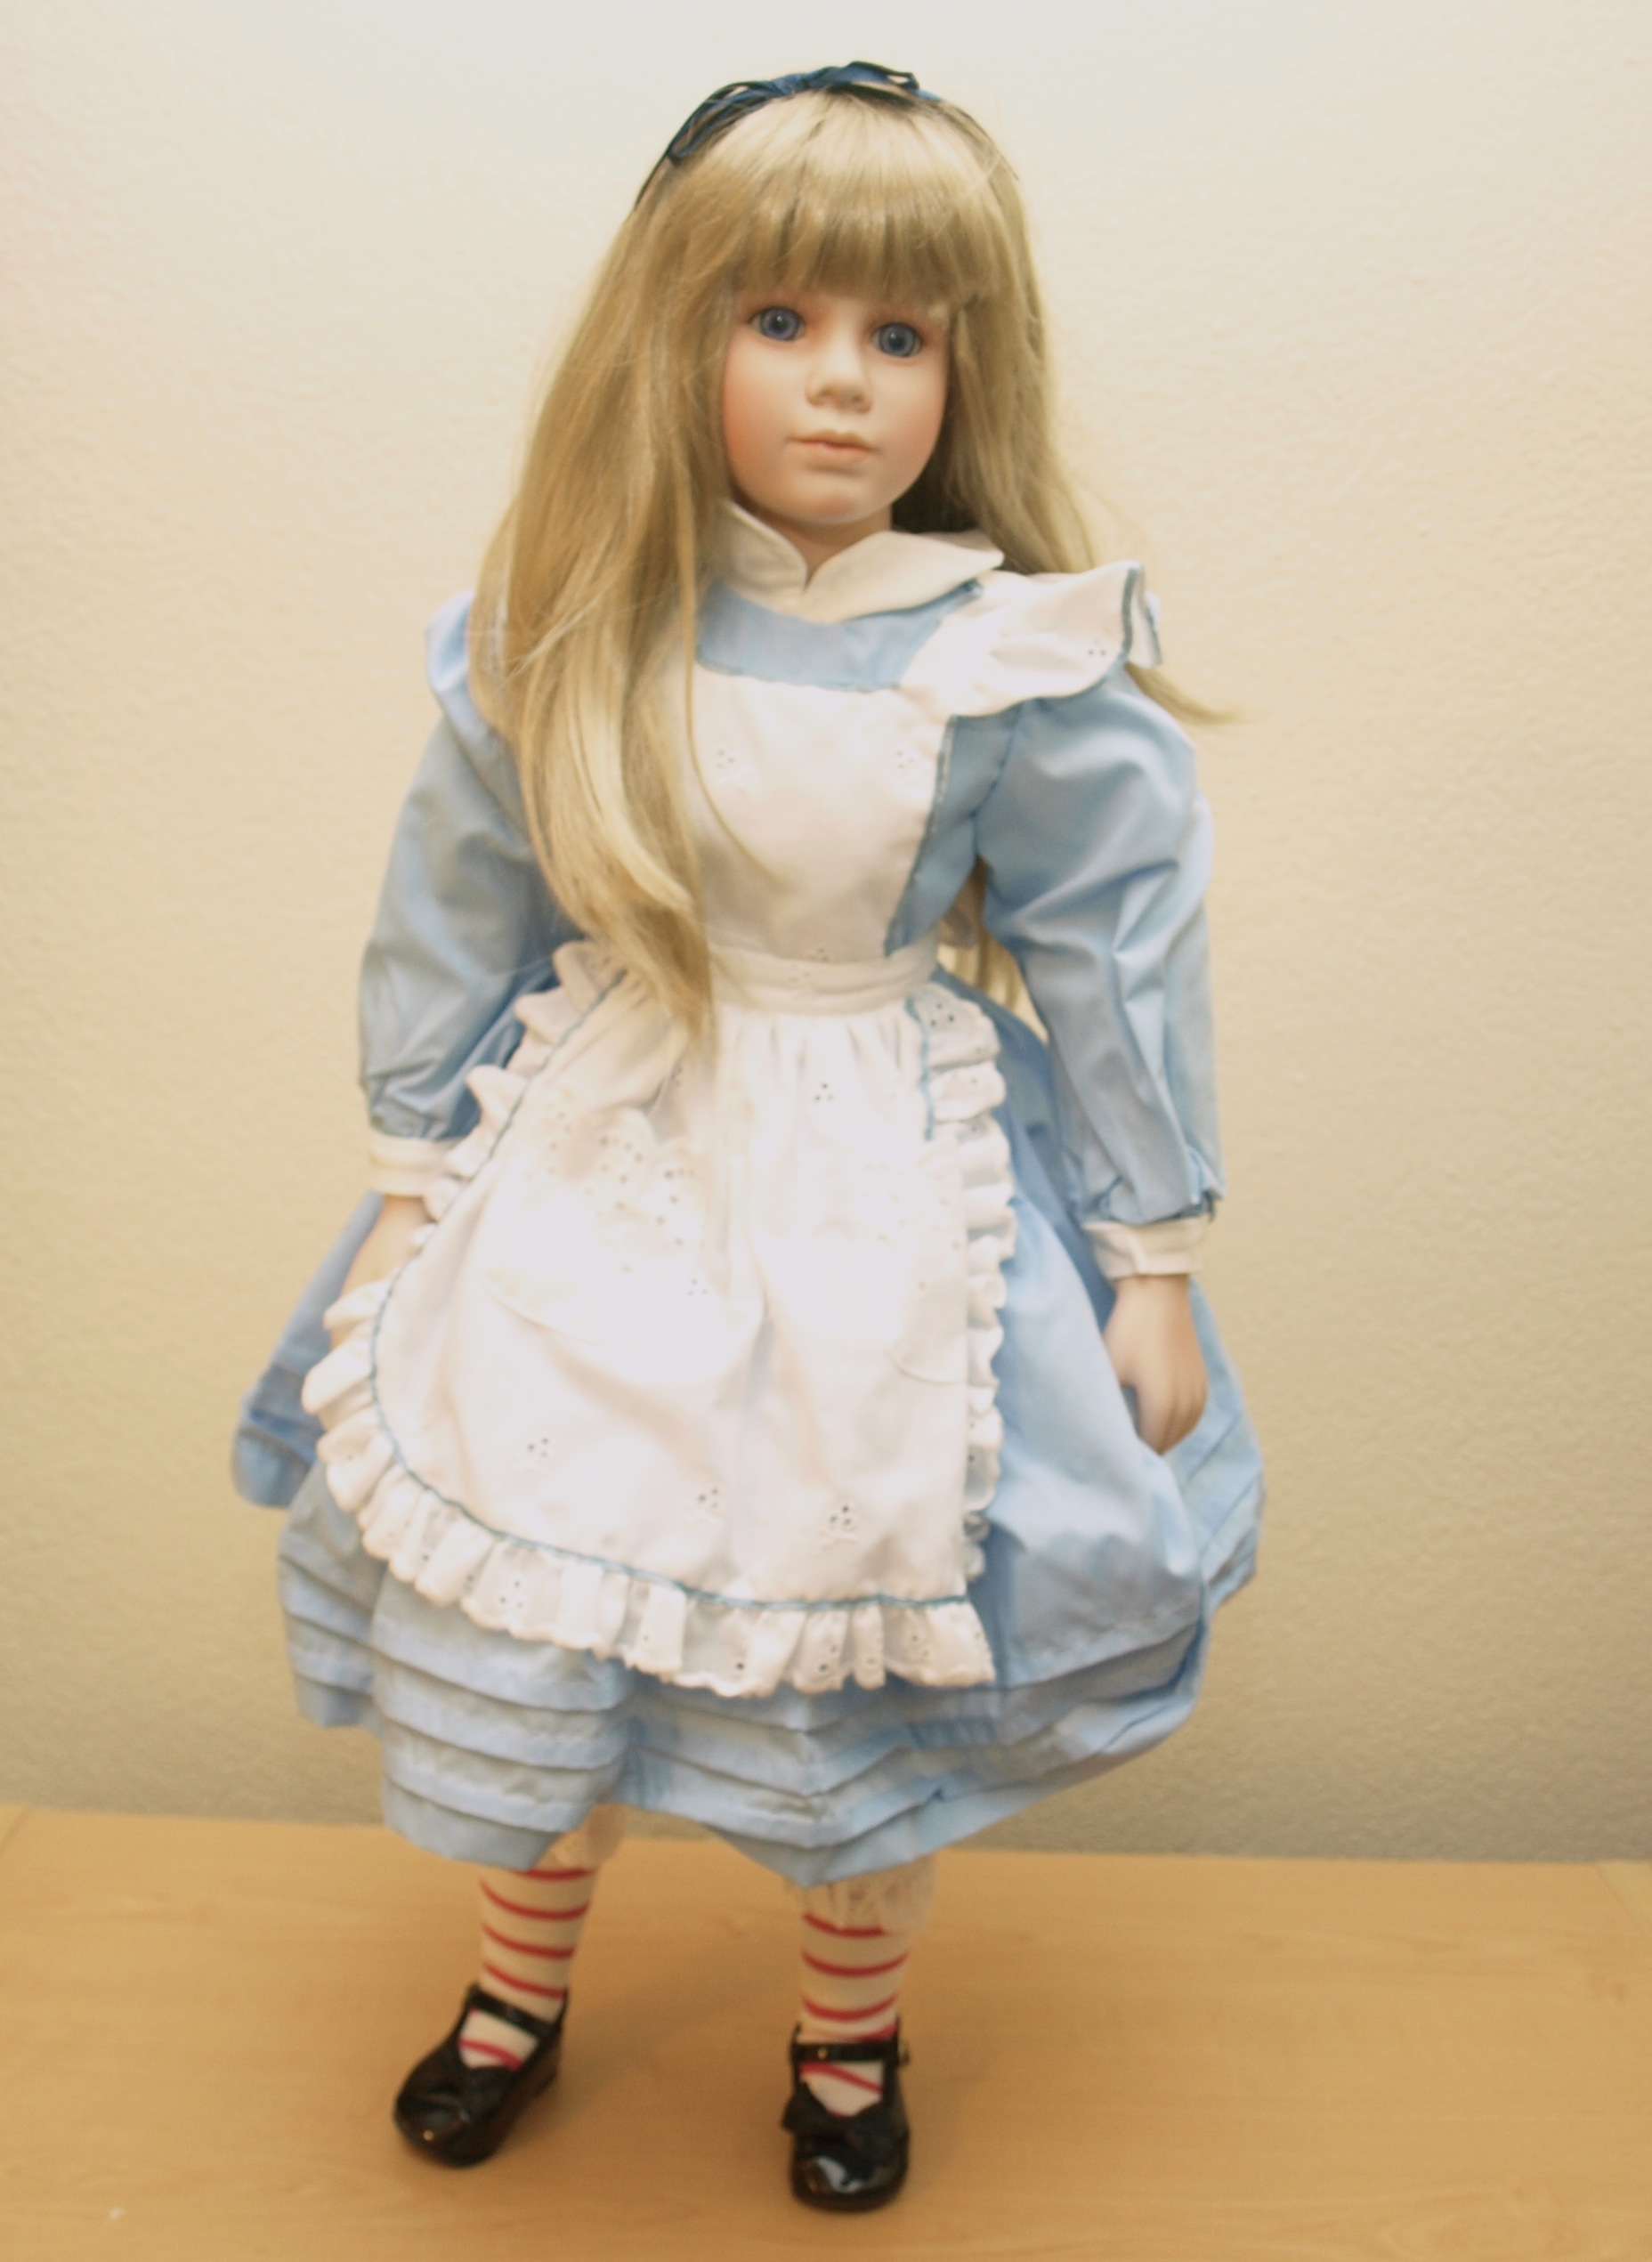 Alice Porcelain Doll by Thelma Resch  Lost in Austin